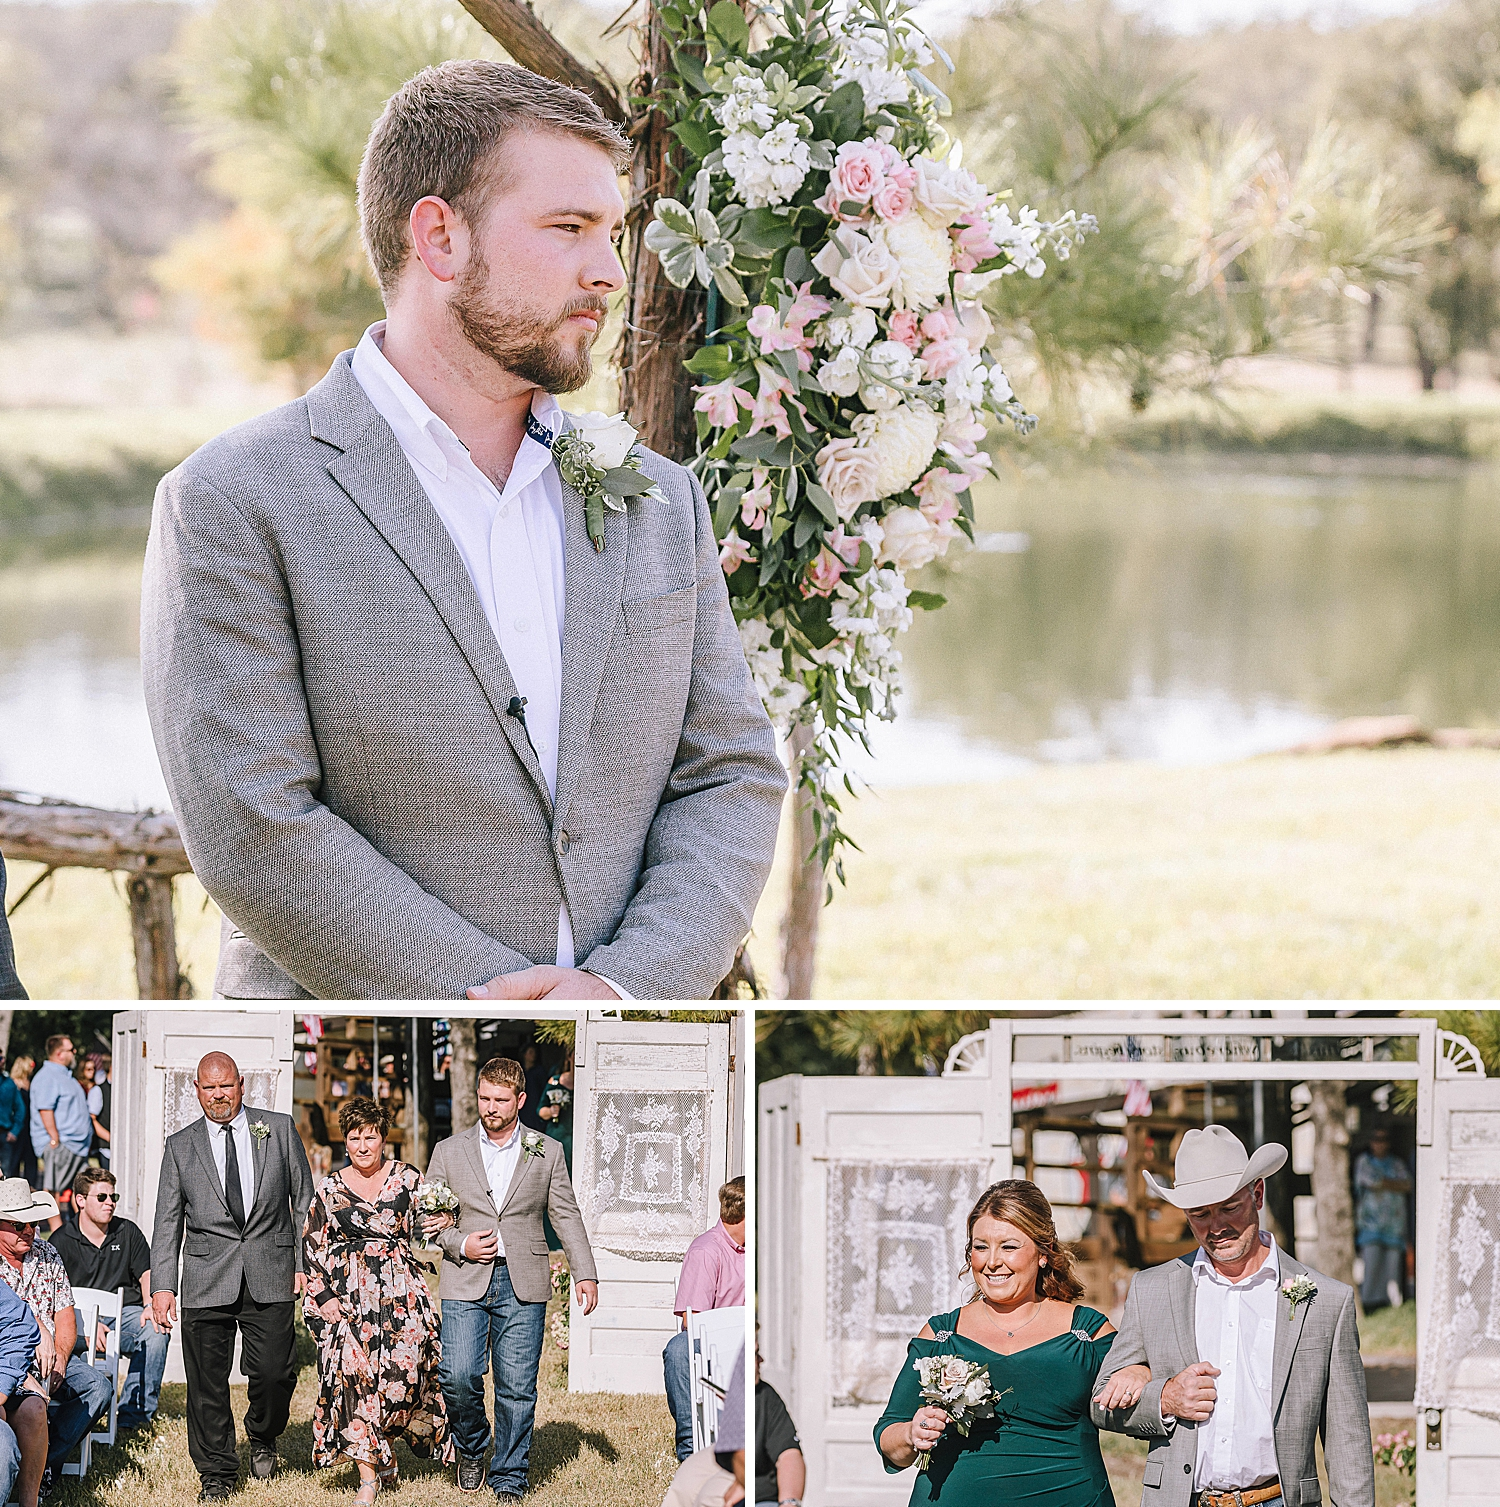 Rackler-Ranch-LaVernia-Texas-Wedding-Carly-Barton-Photography_0076.jpg